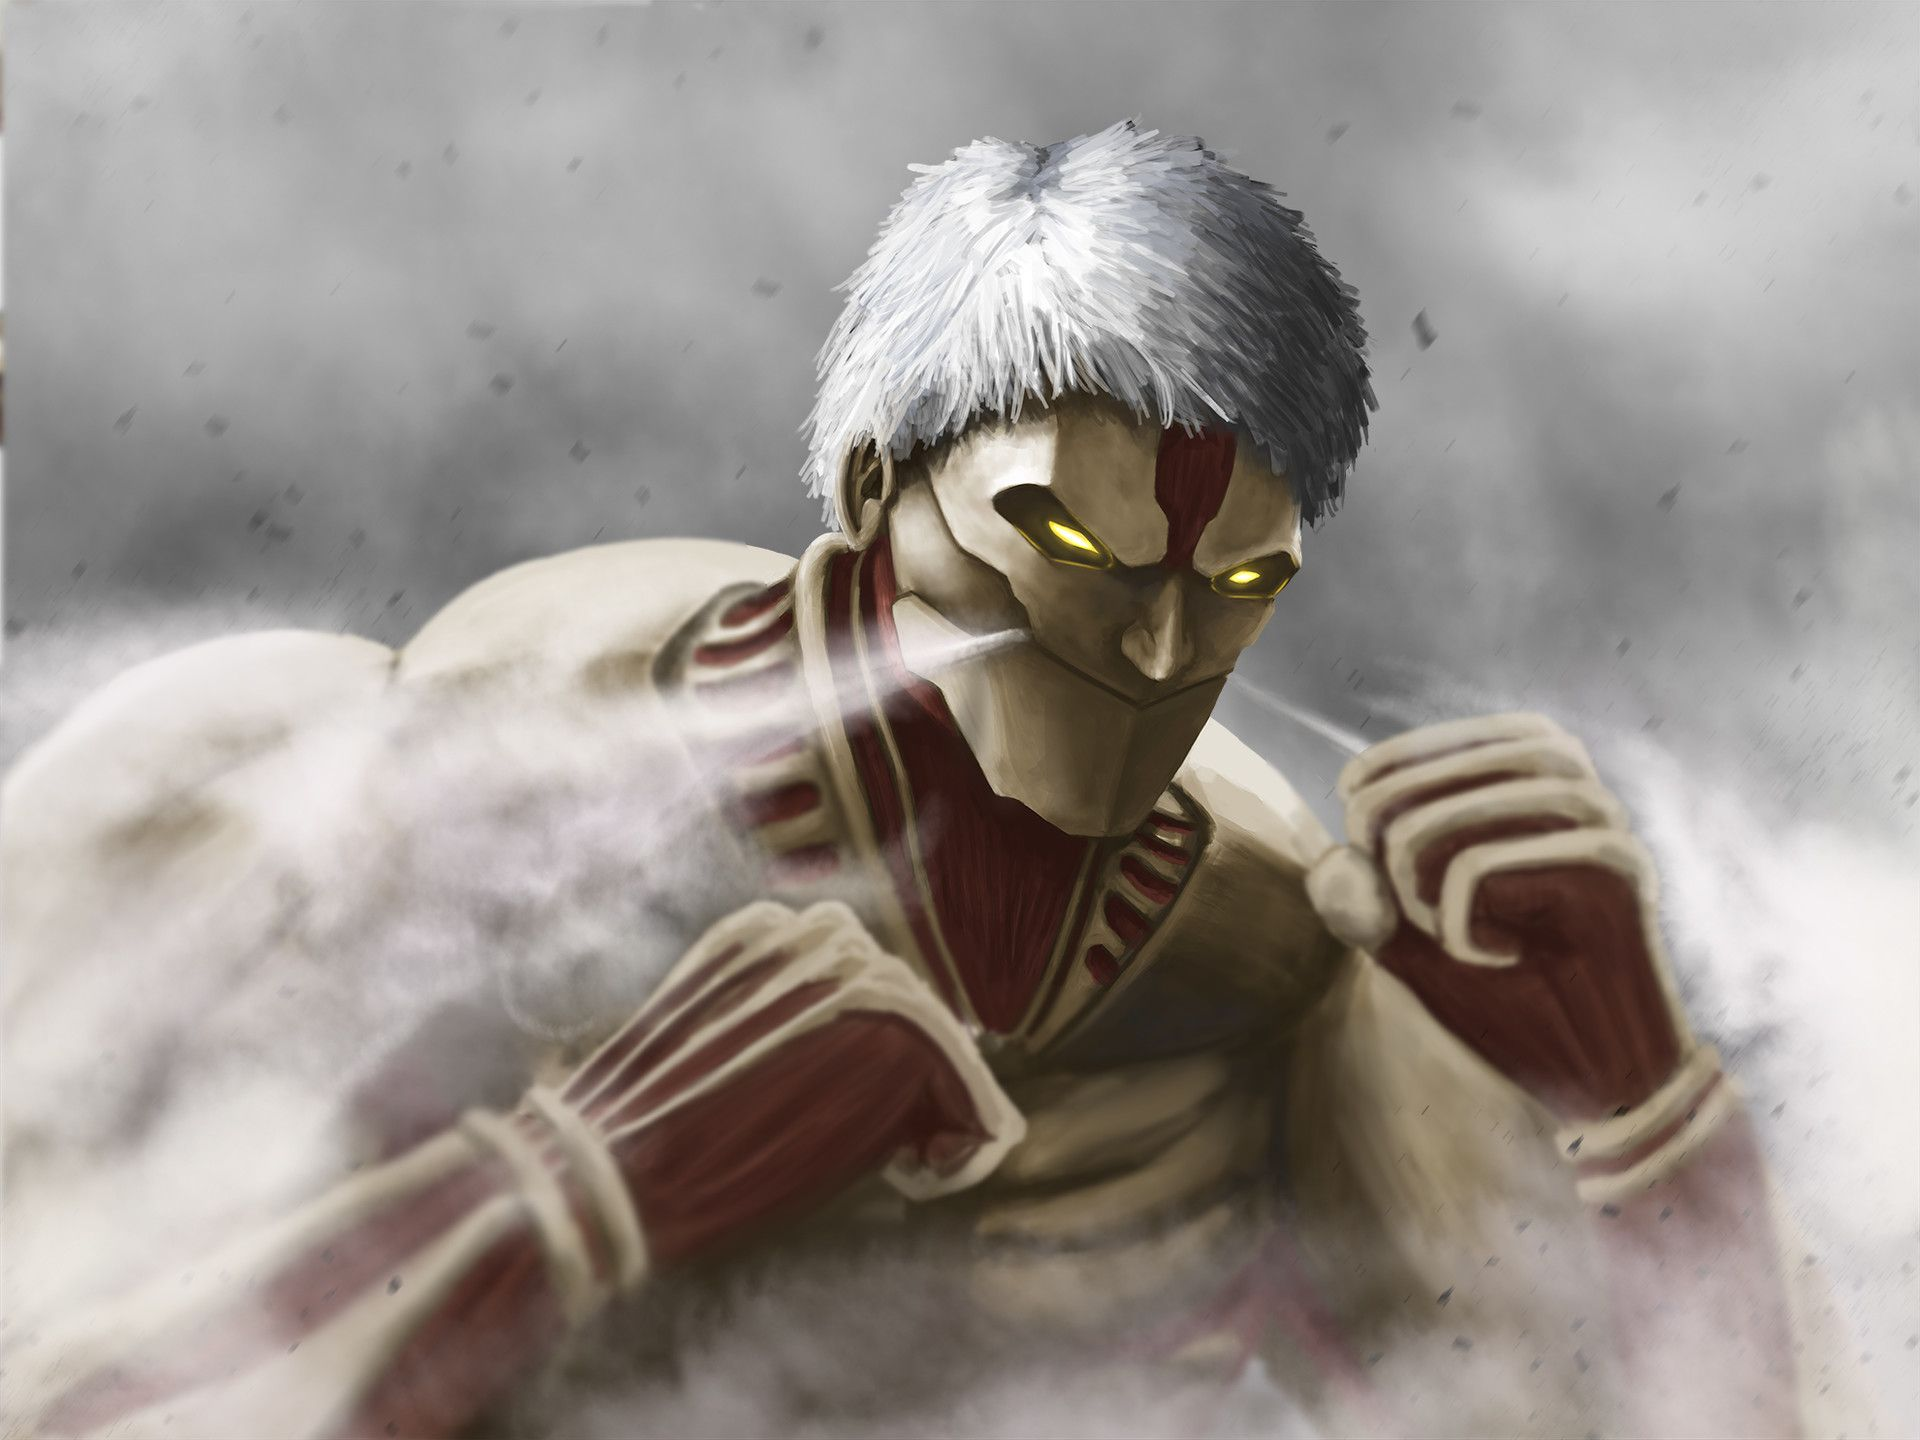 Get ready to defend shiganshina! Armored Titan Wallpapers - Wallpaper Cave